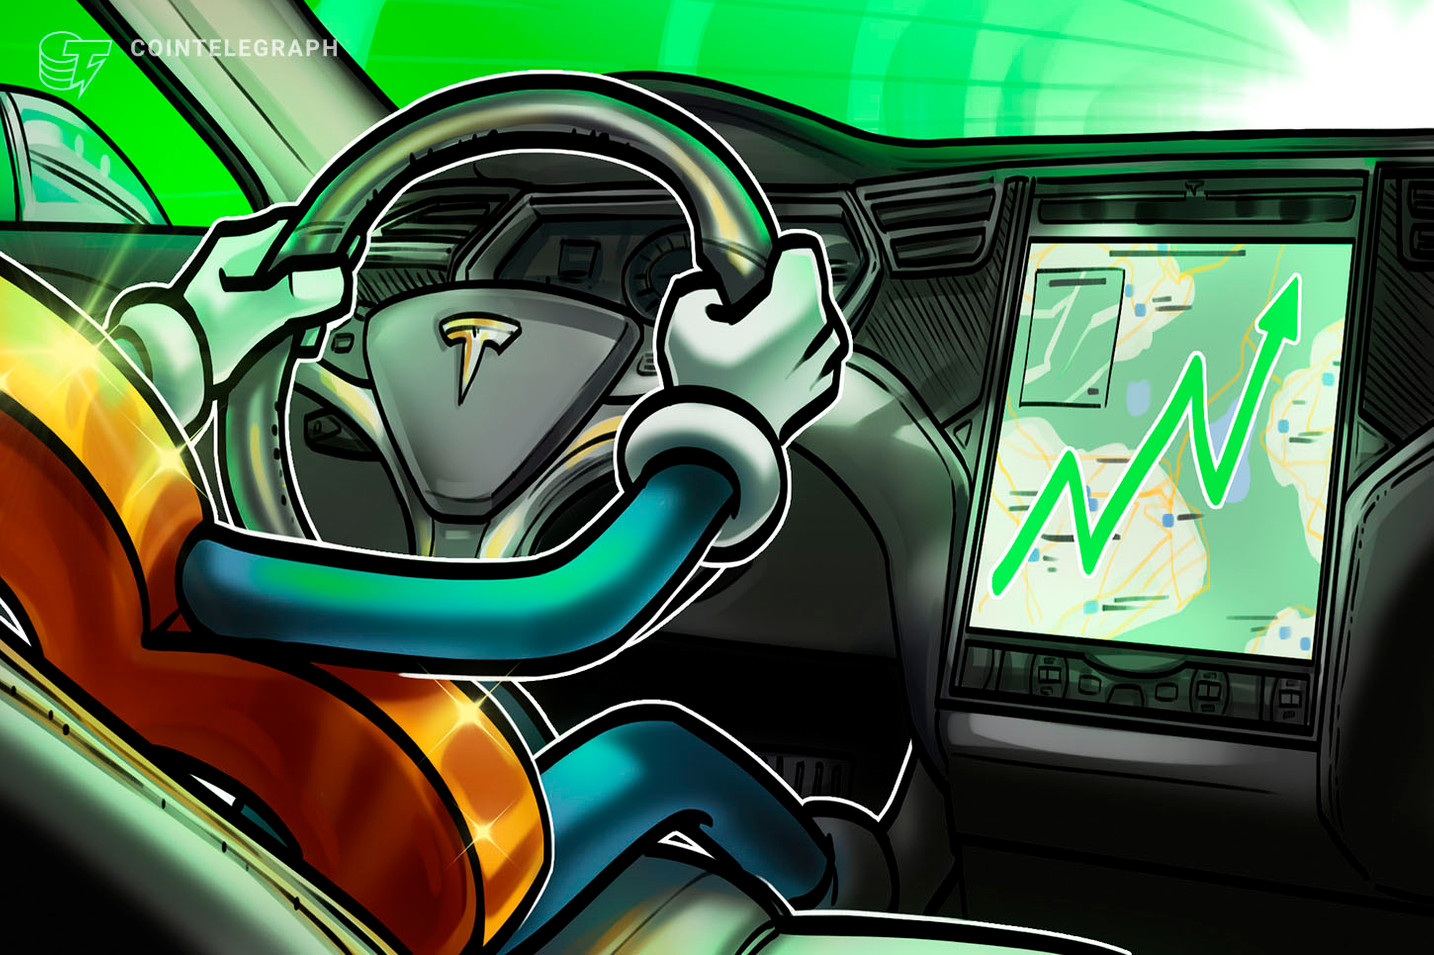 Tesla landlord now accepts cryptocurrencies: will Elon Musk soon pay rent in Bitcoin?